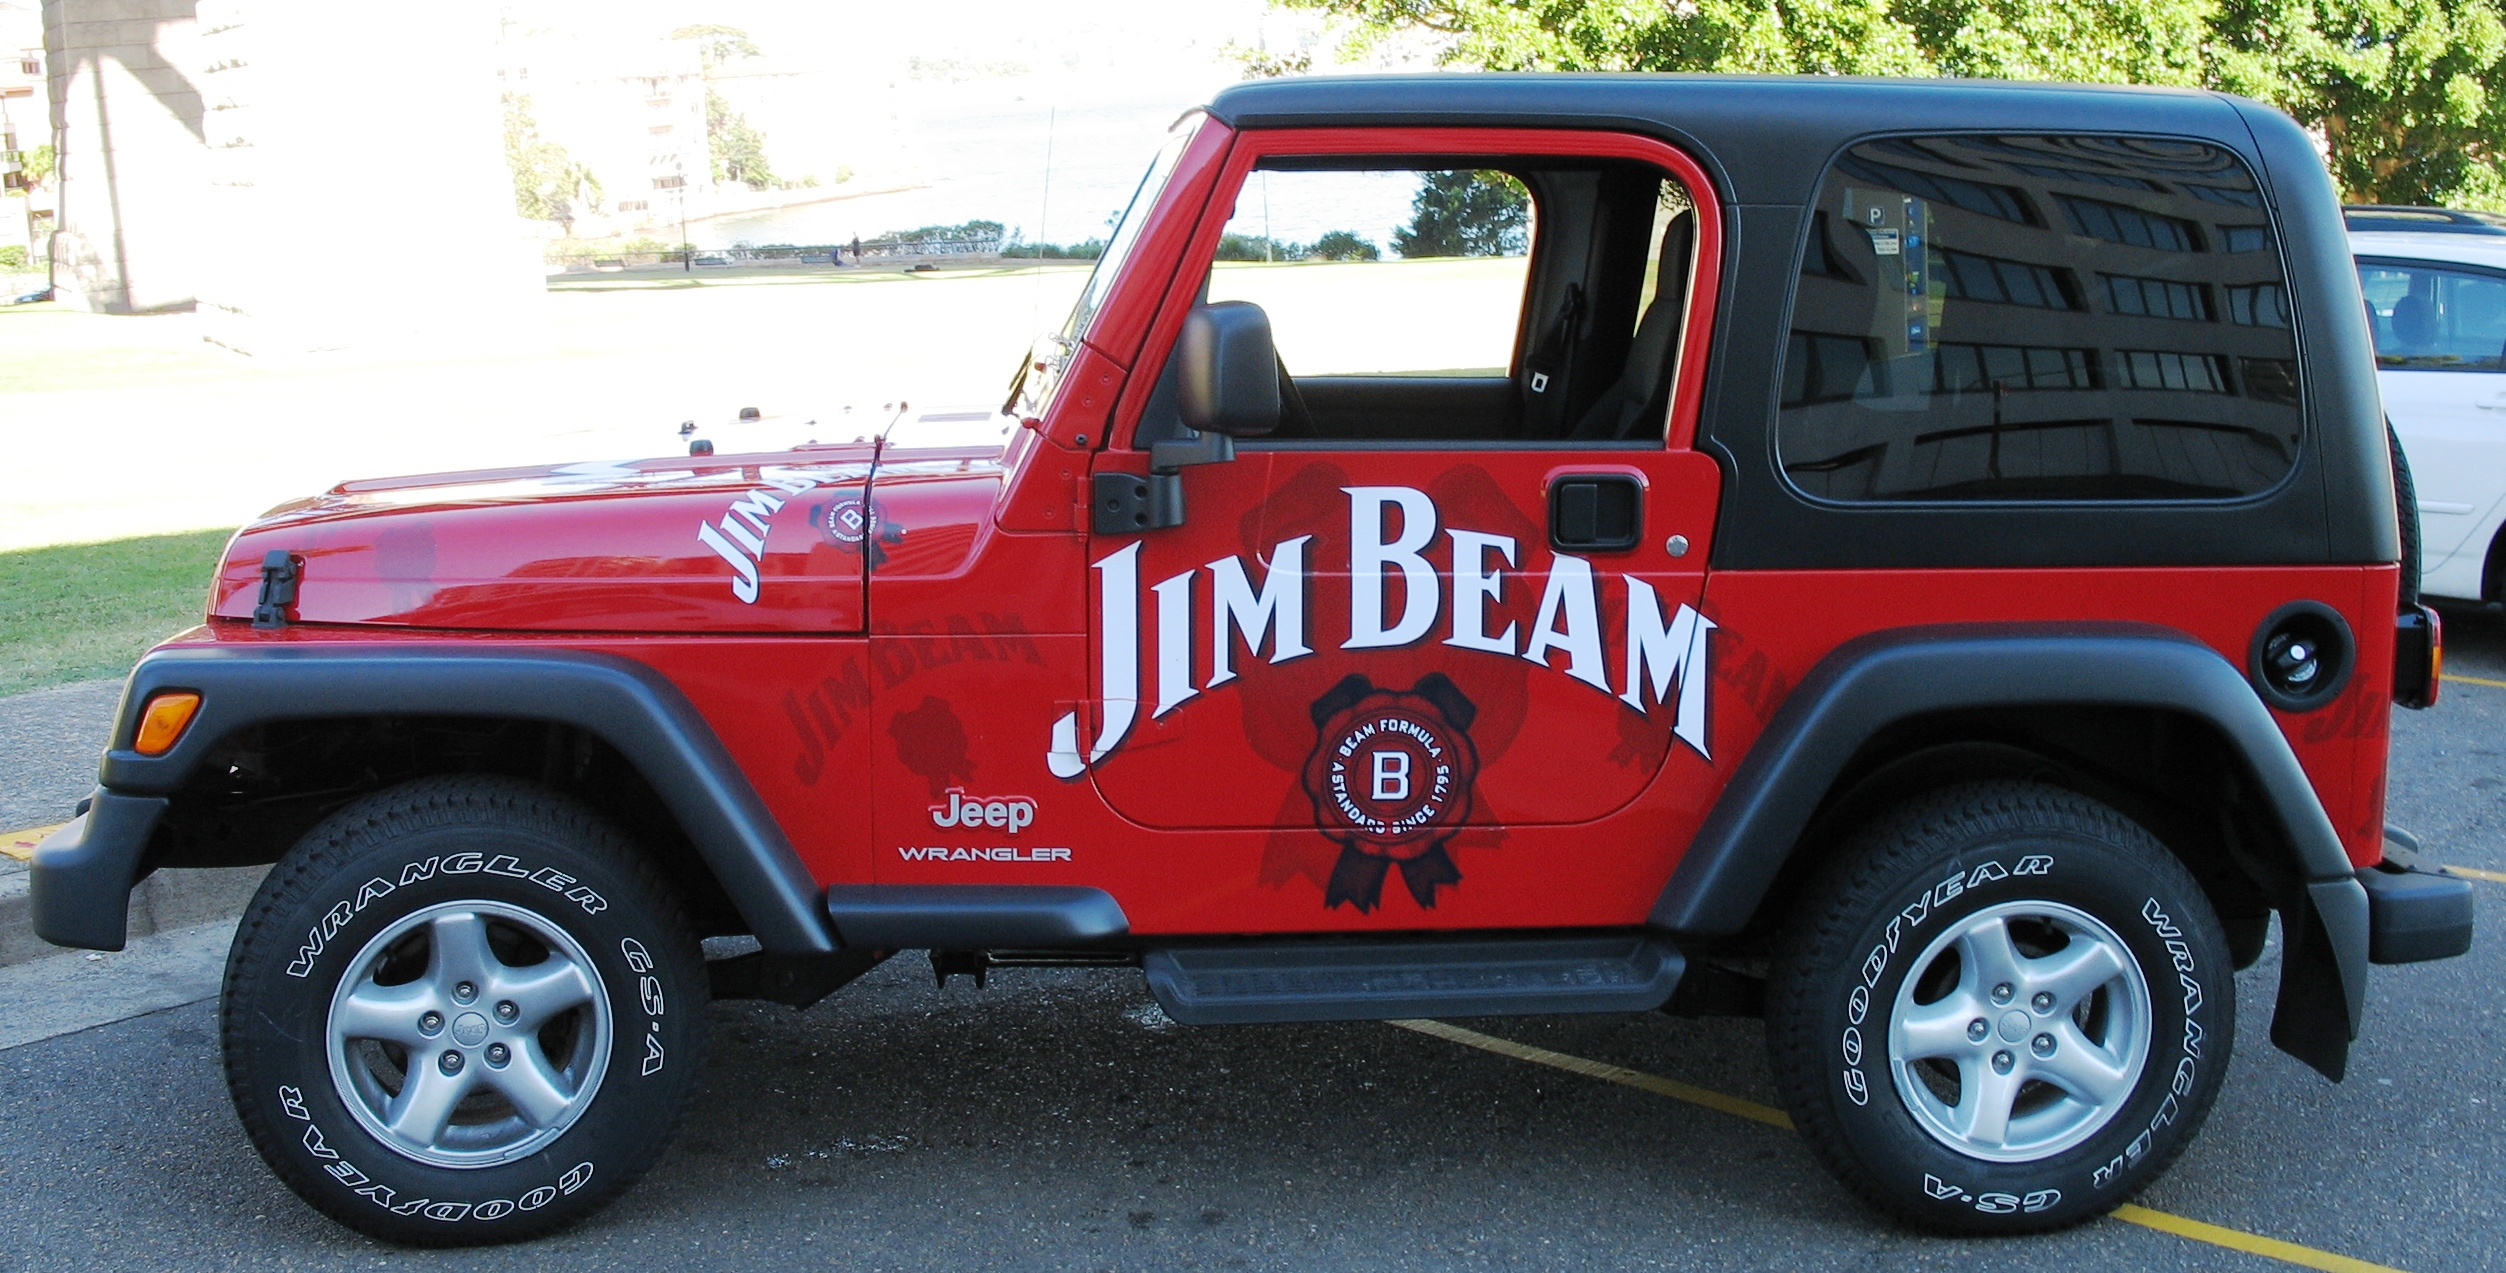 Fleet graphics. Jim Beam Jeep. Alcohol sampling and promotions. Vehicle graphics.